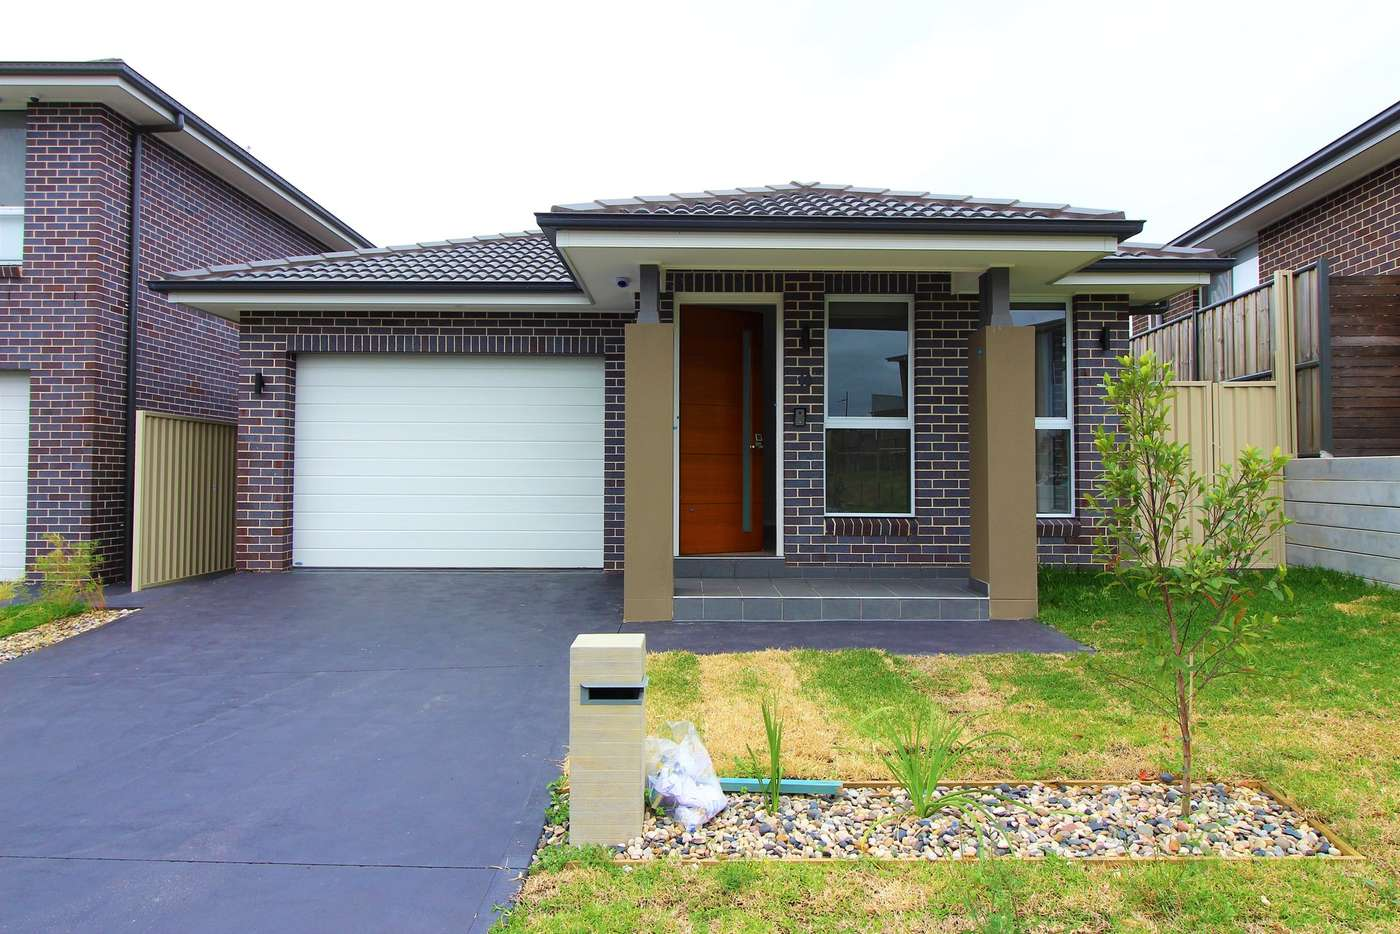 Main view of Homely house listing, 18 Bullaburra Street, The Ponds NSW 2769